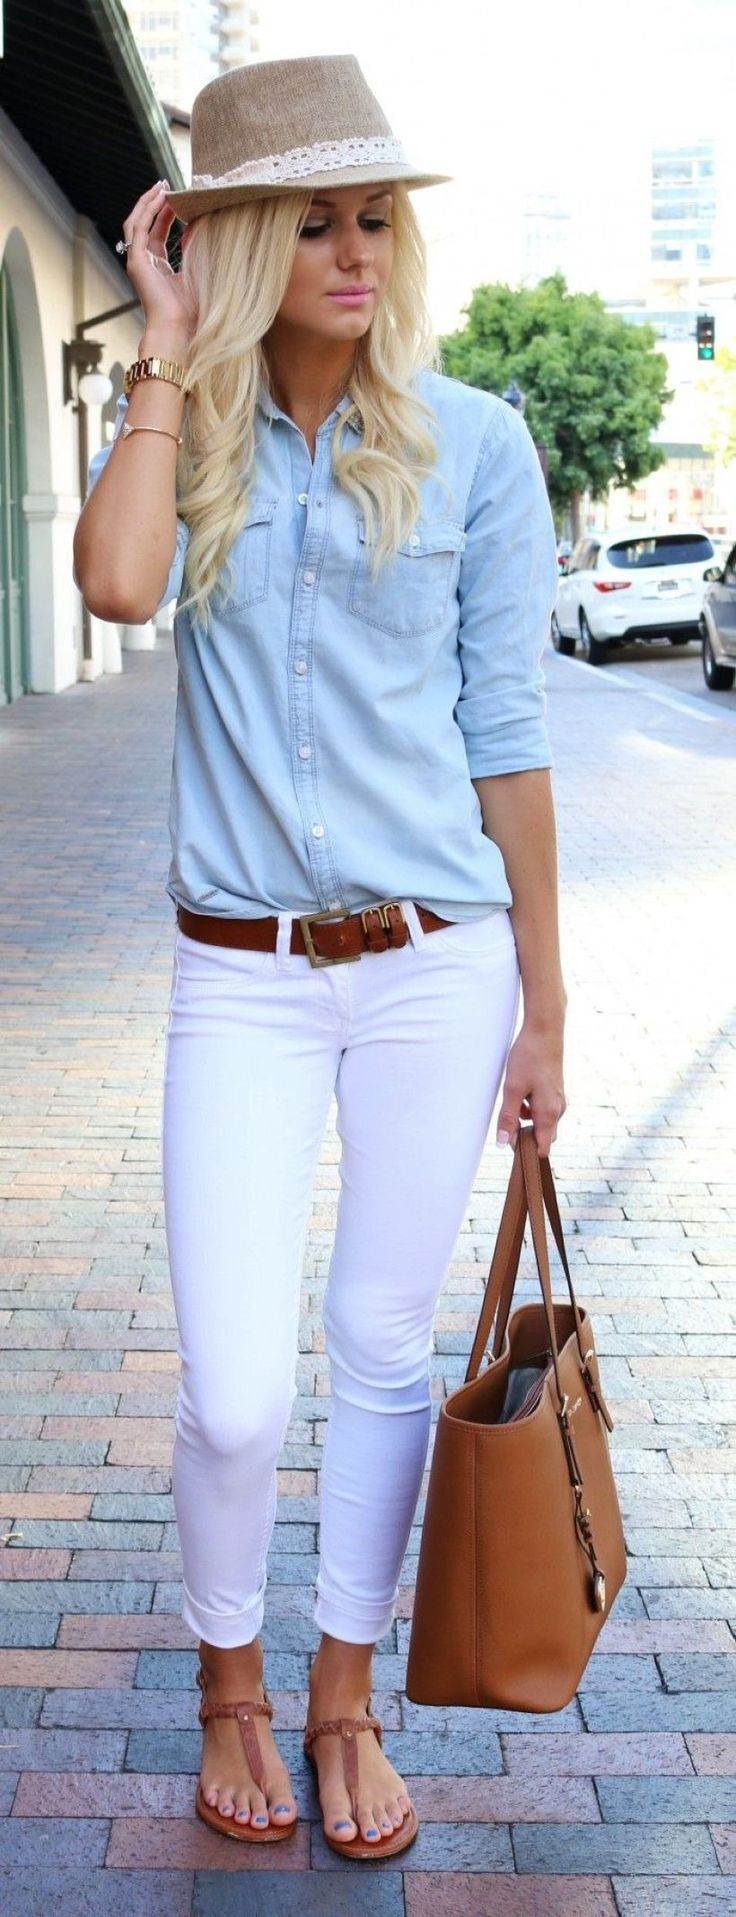 Stunning 37 Stylish Summer Outfit Combinations to Wear at Work https://inspinre.com/2018/02/24/37-stylish-summer-outfit-combinations-wear-work/